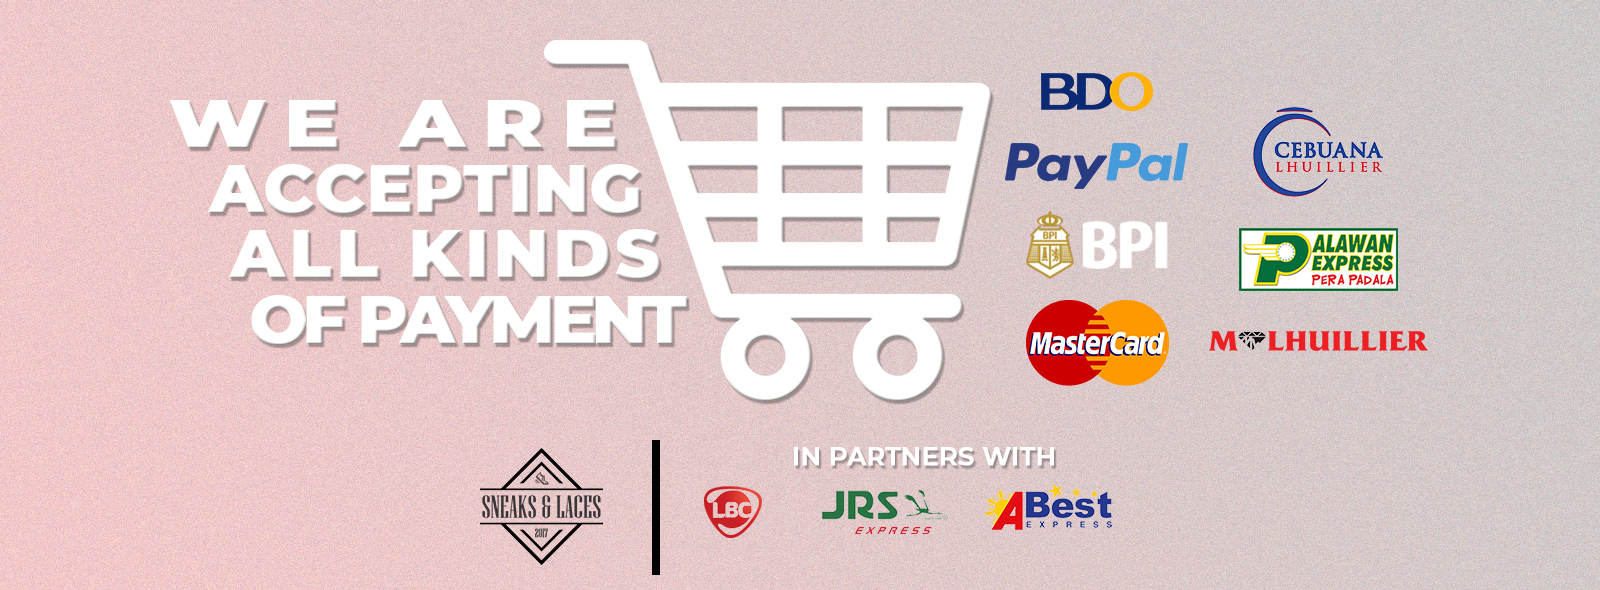 payments-banner